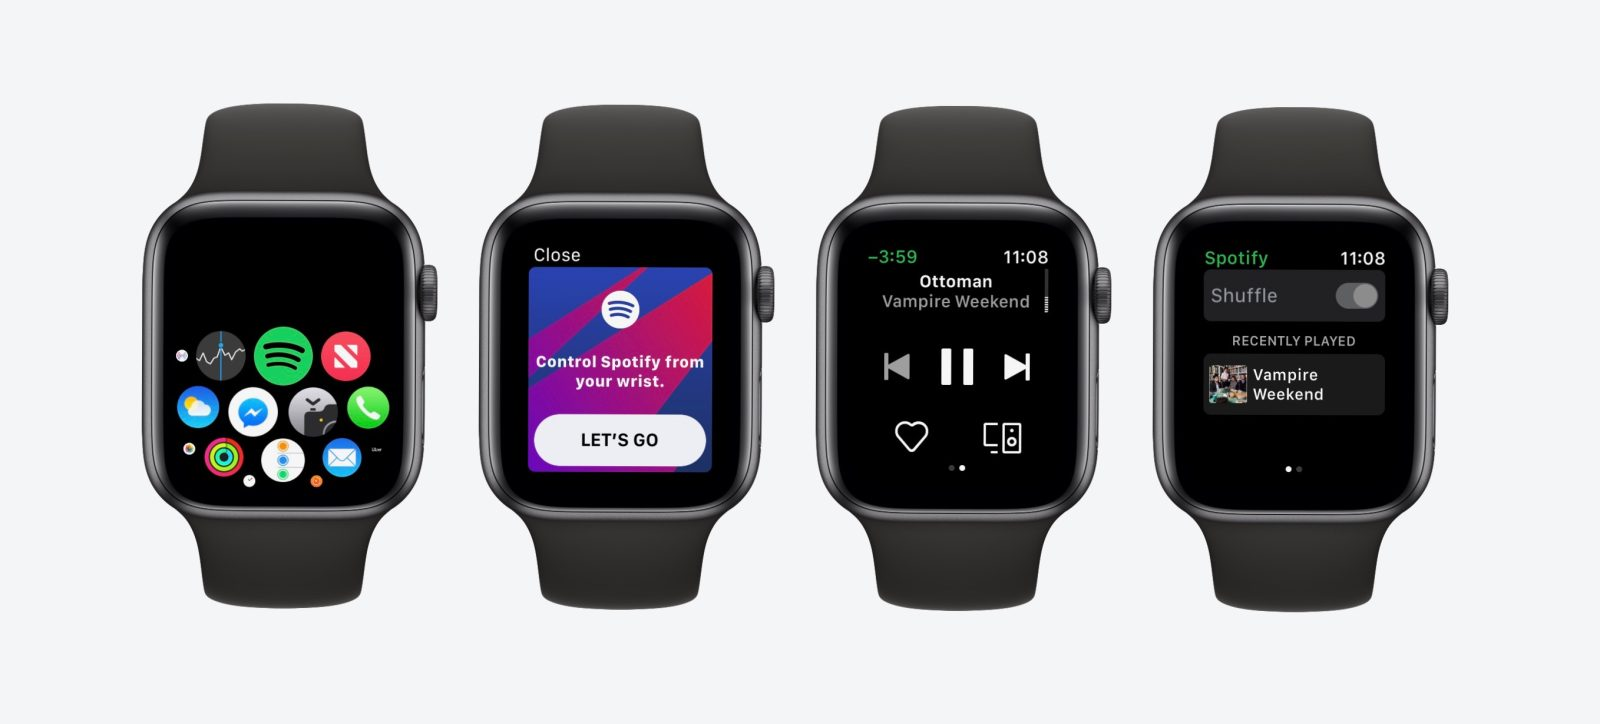 How to get Spotify on Apple Watch - 9to5Mac